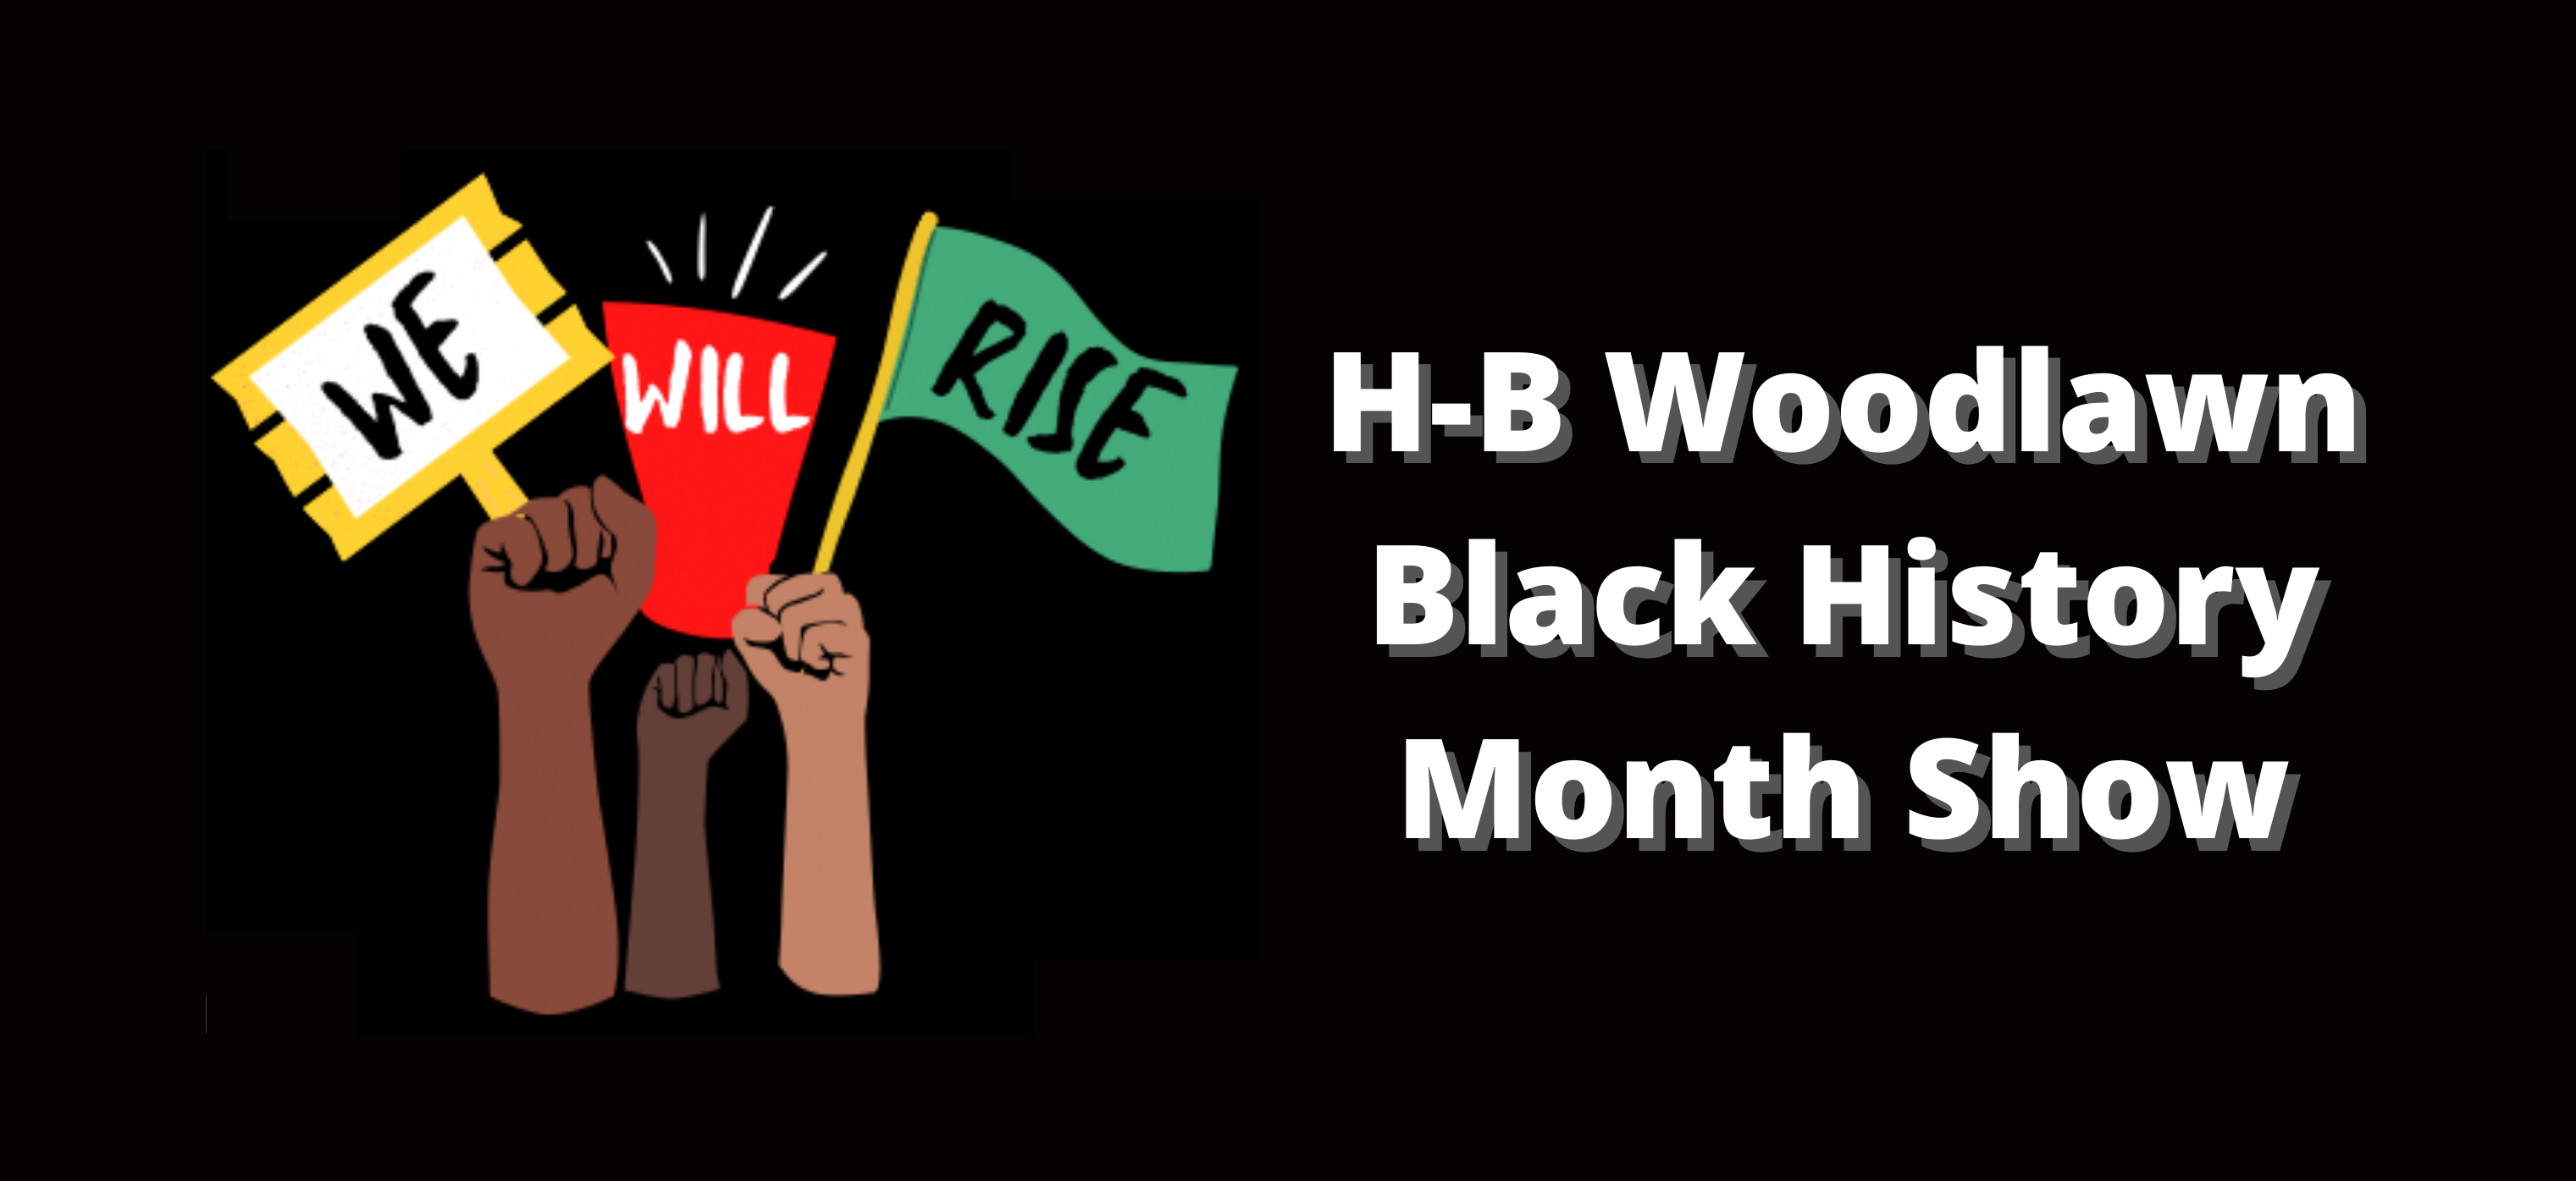 Join us to celebrate Black History Month!